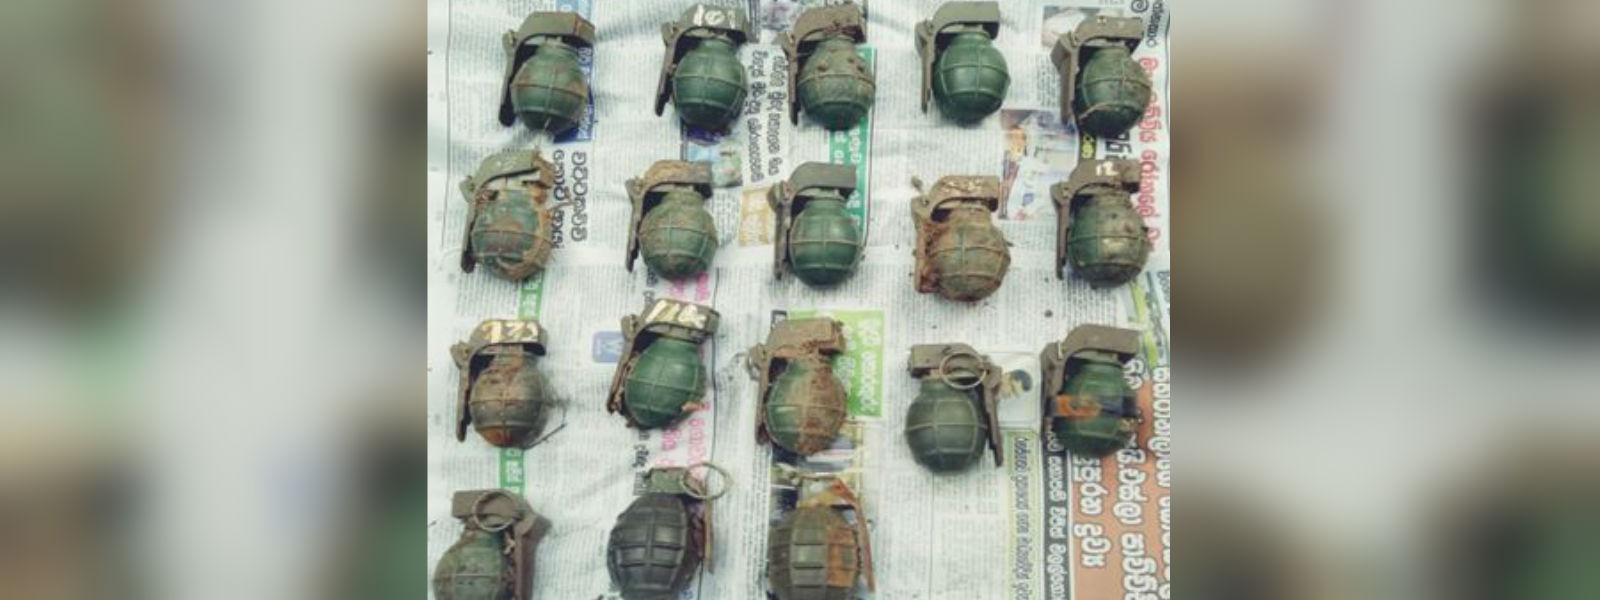 18 live hand grenades discovered in Puthukudiyiruppu